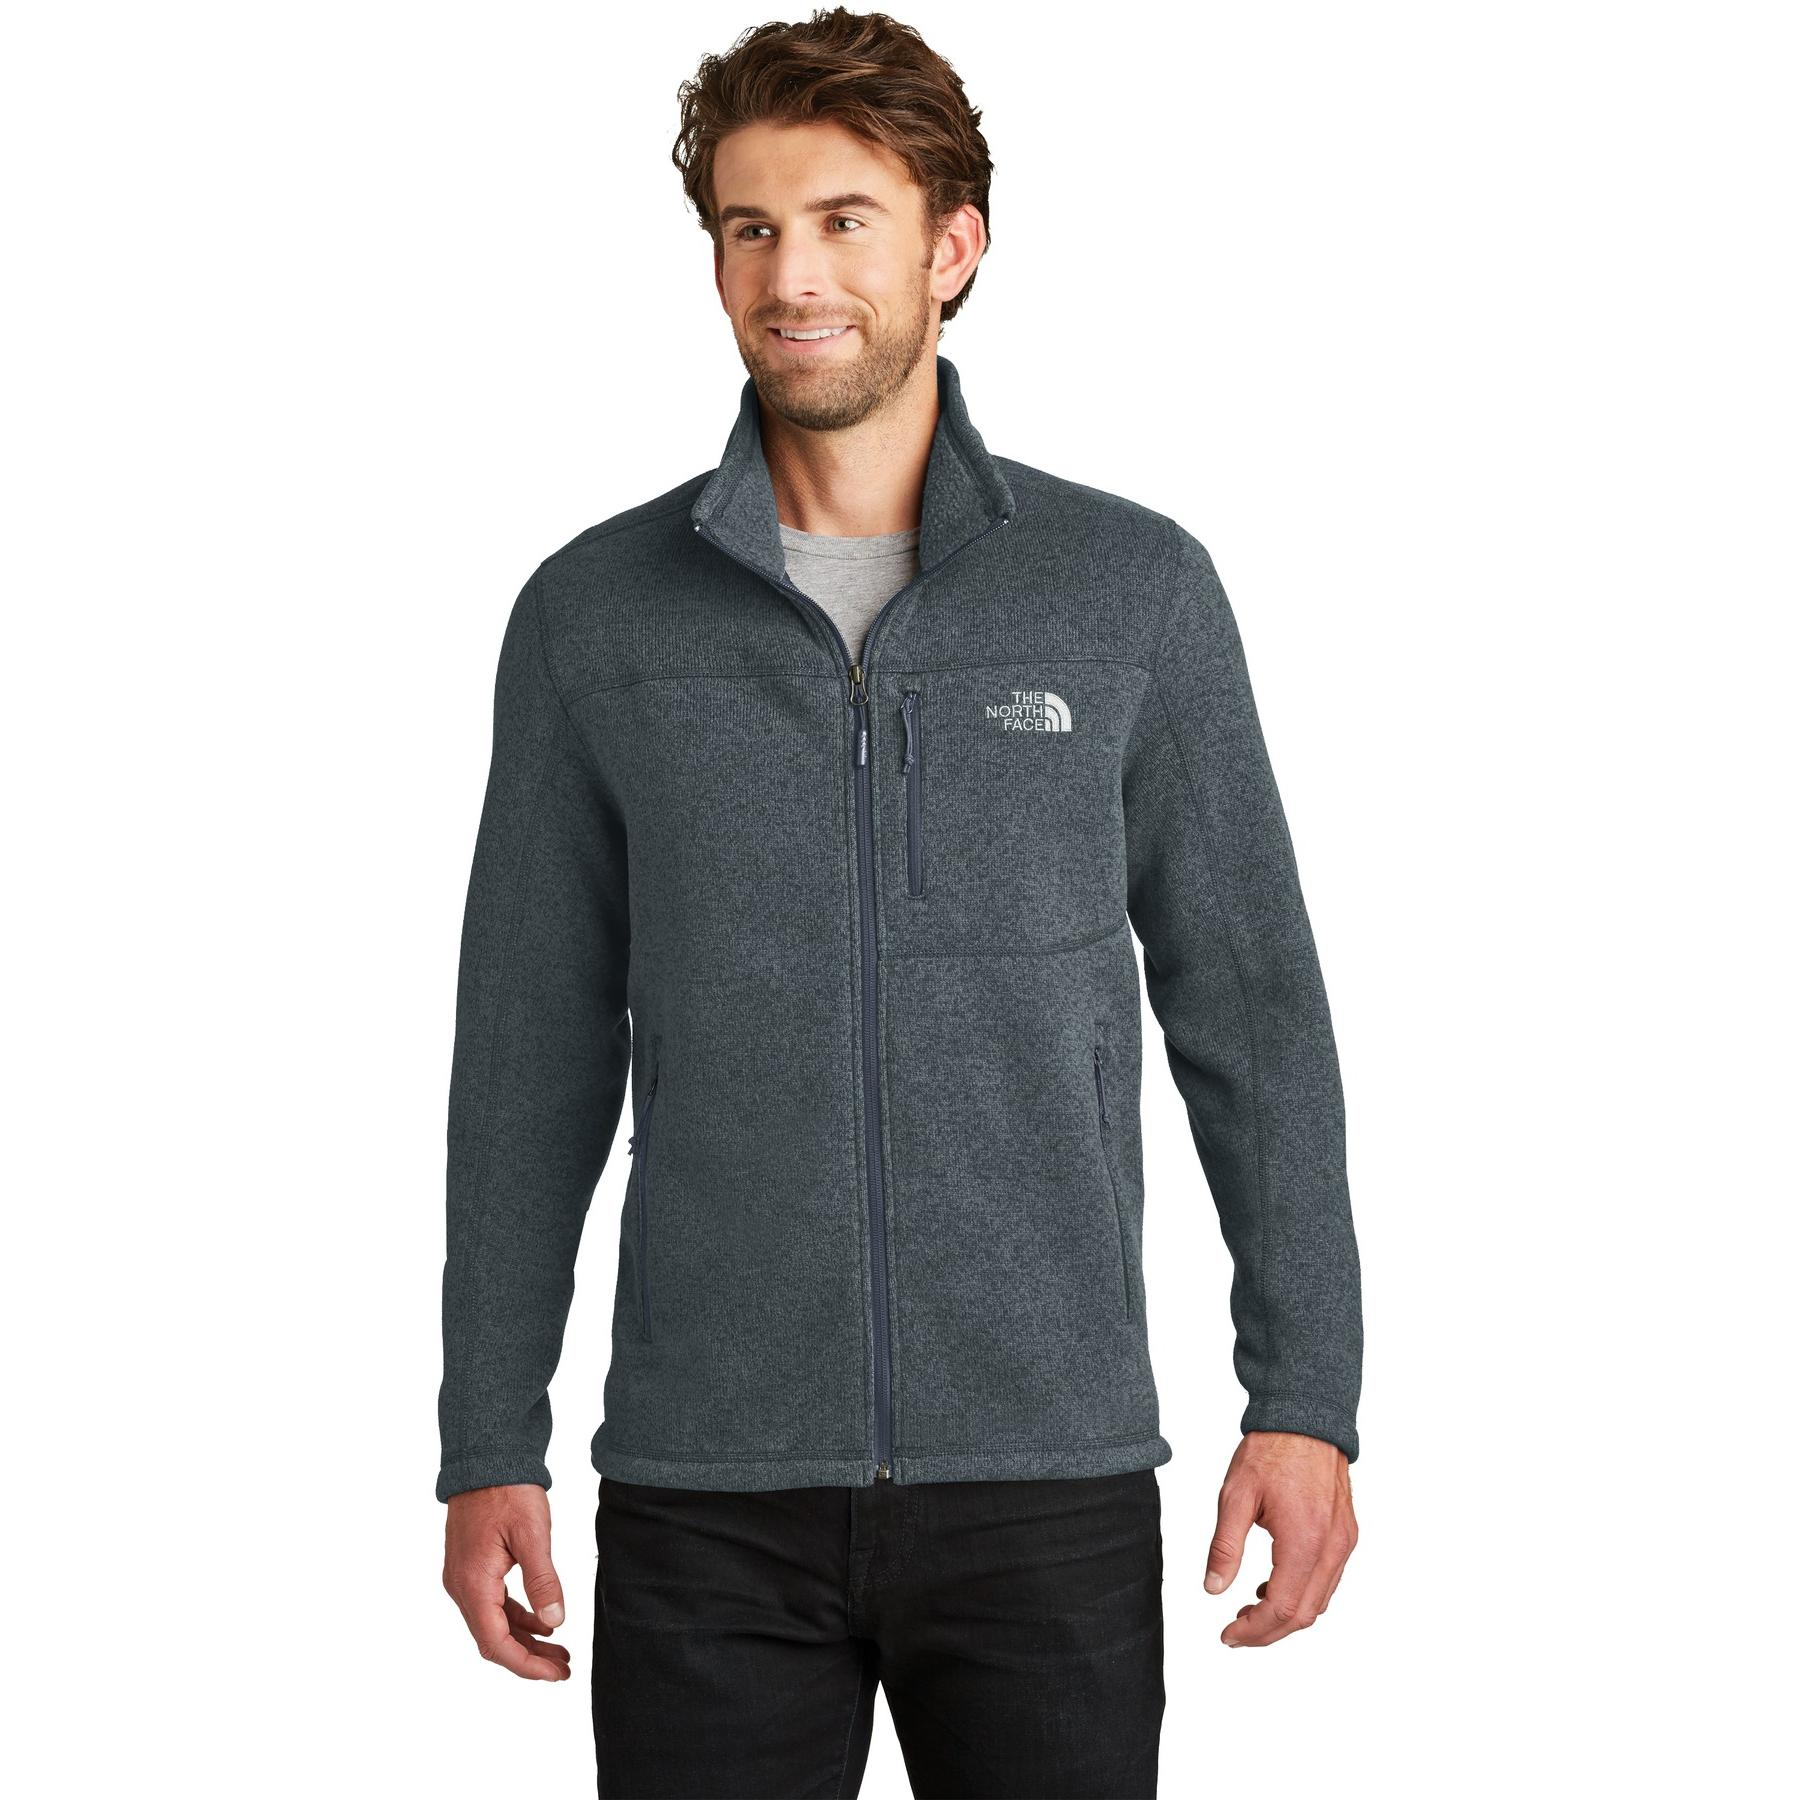 b40c80f5e The North Face NF0A3LH7 Sweater Fleece Jacket - Urban Navy Heather